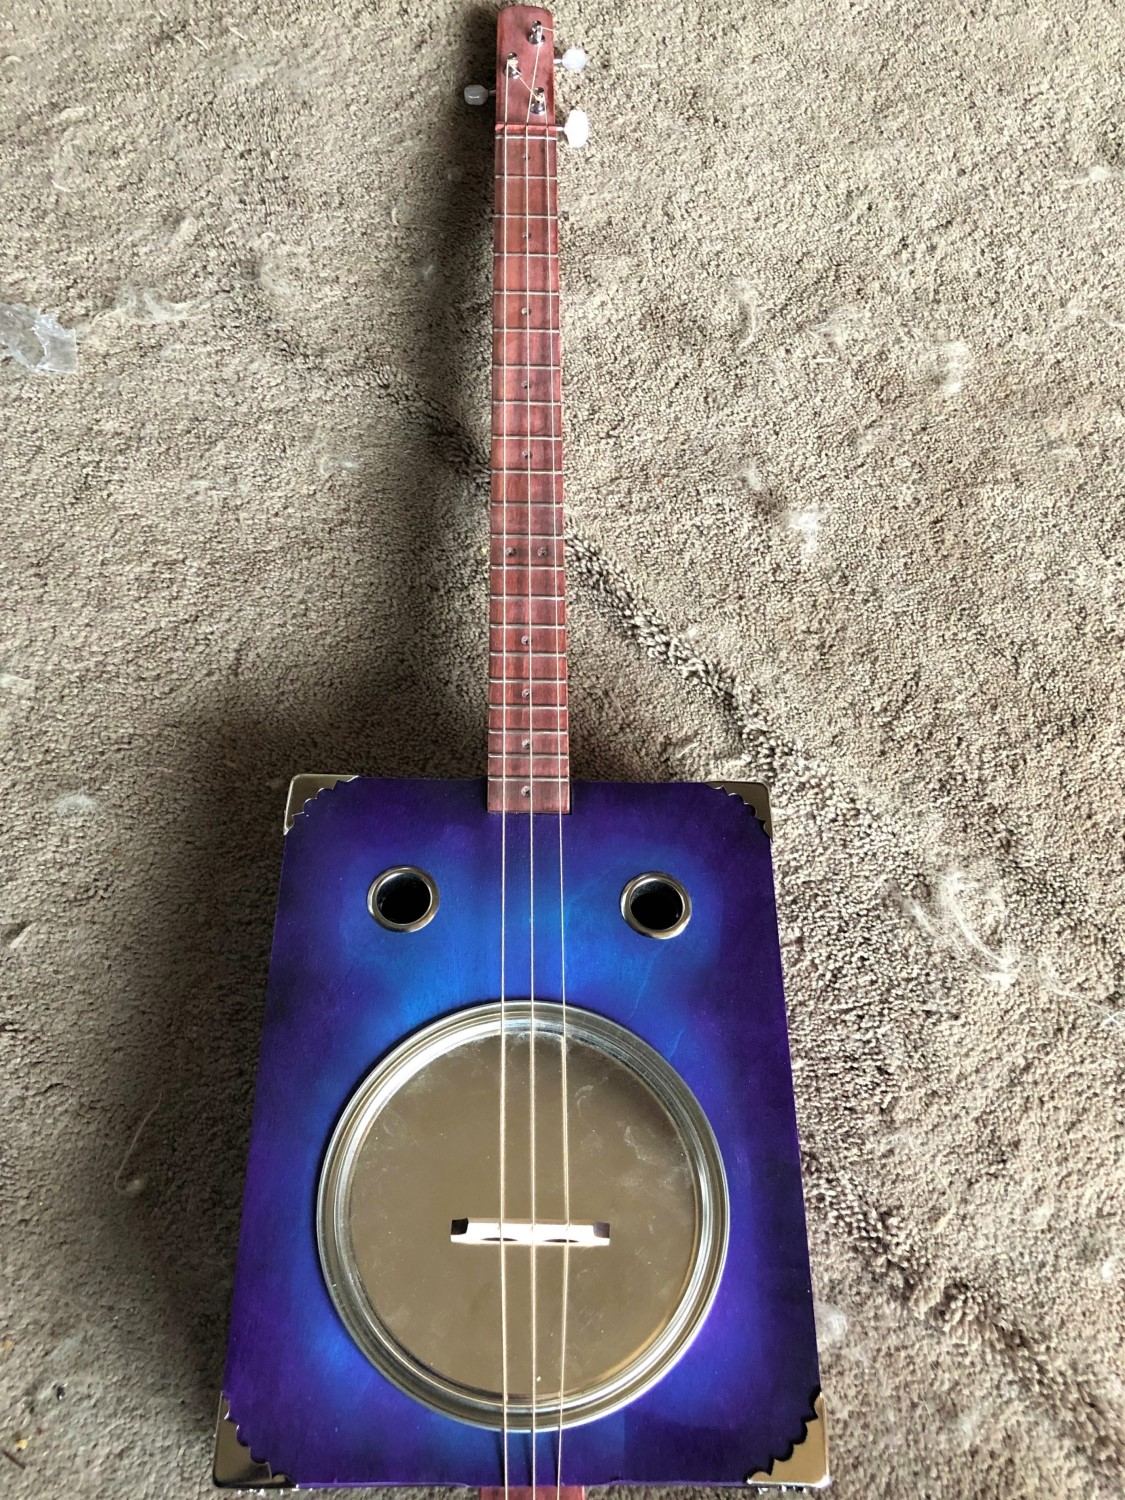 Mark C. C.'s custom Tin Pan Alley guitar